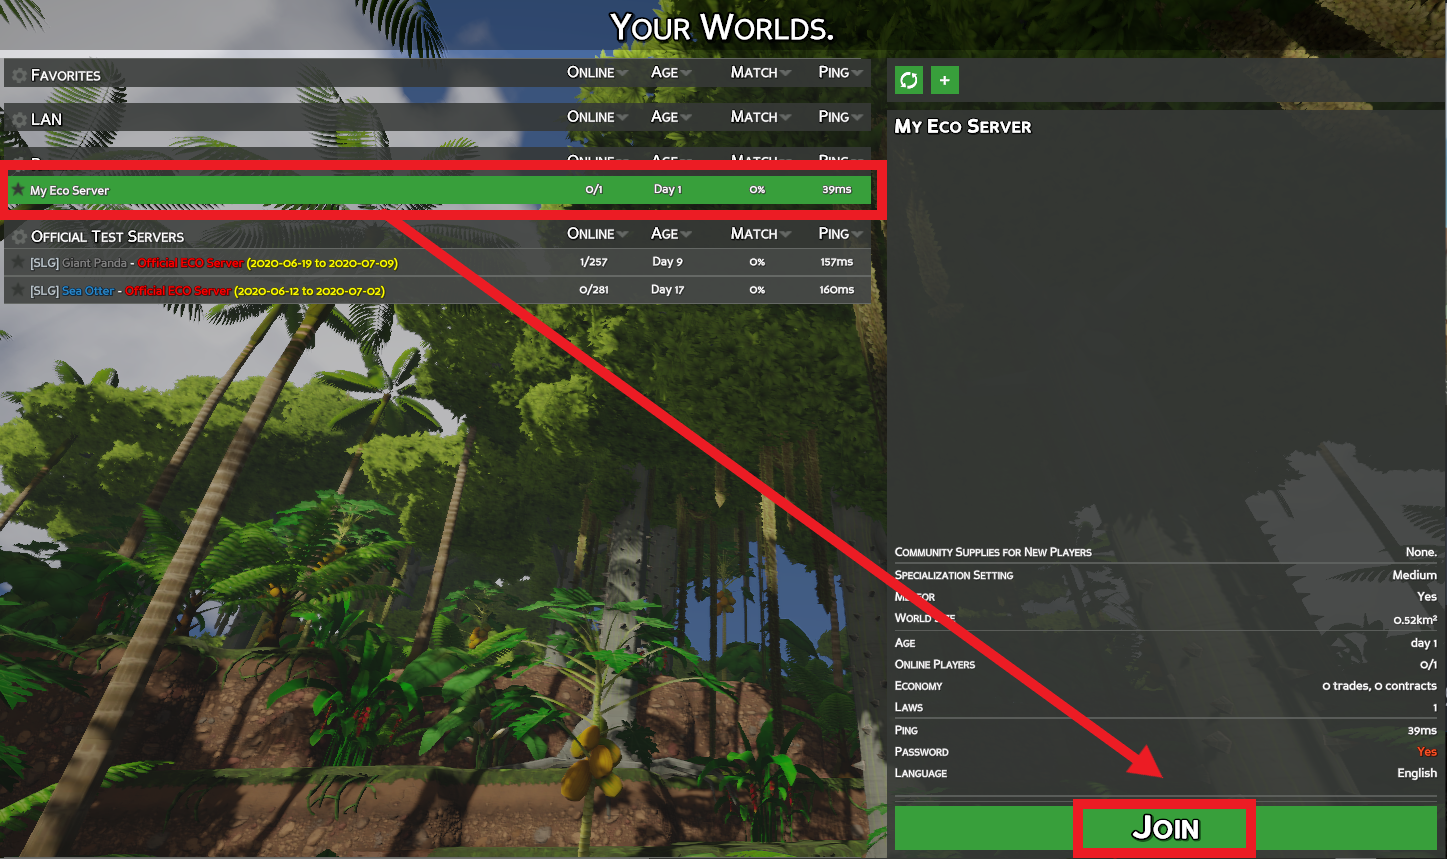 A view of the Your Worlds server listings, showing a recently played on server that can be quickly rejoined.